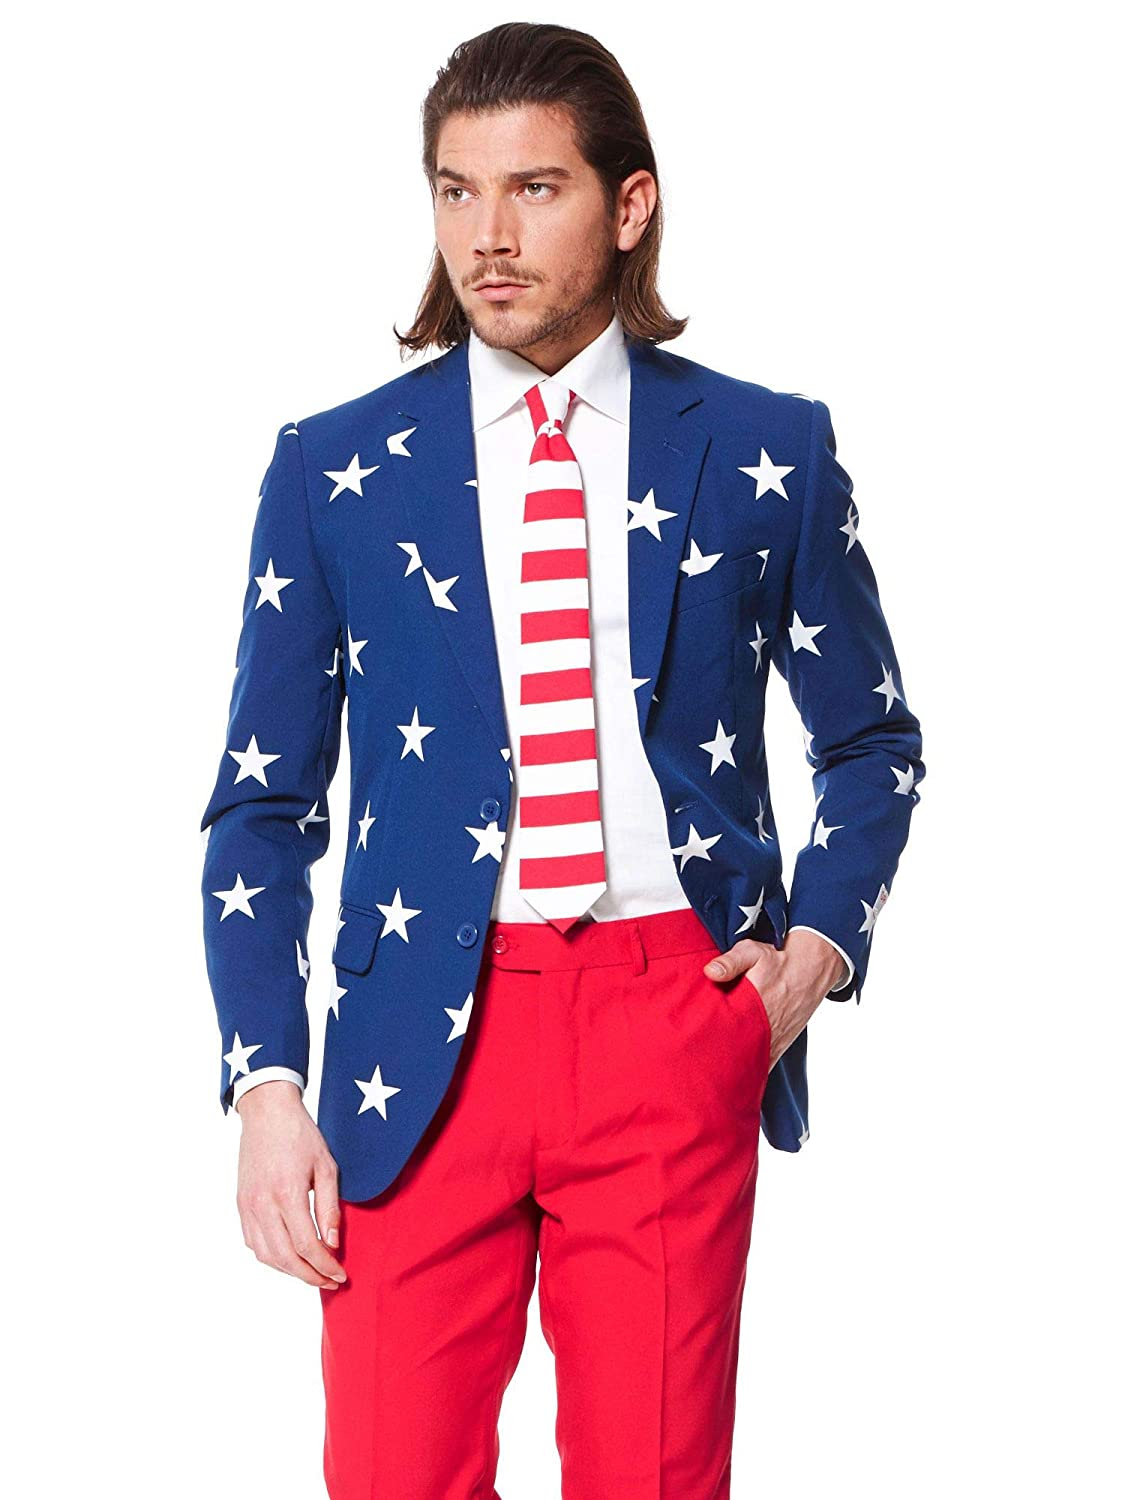 Men's Stars and Stripes Party Suit